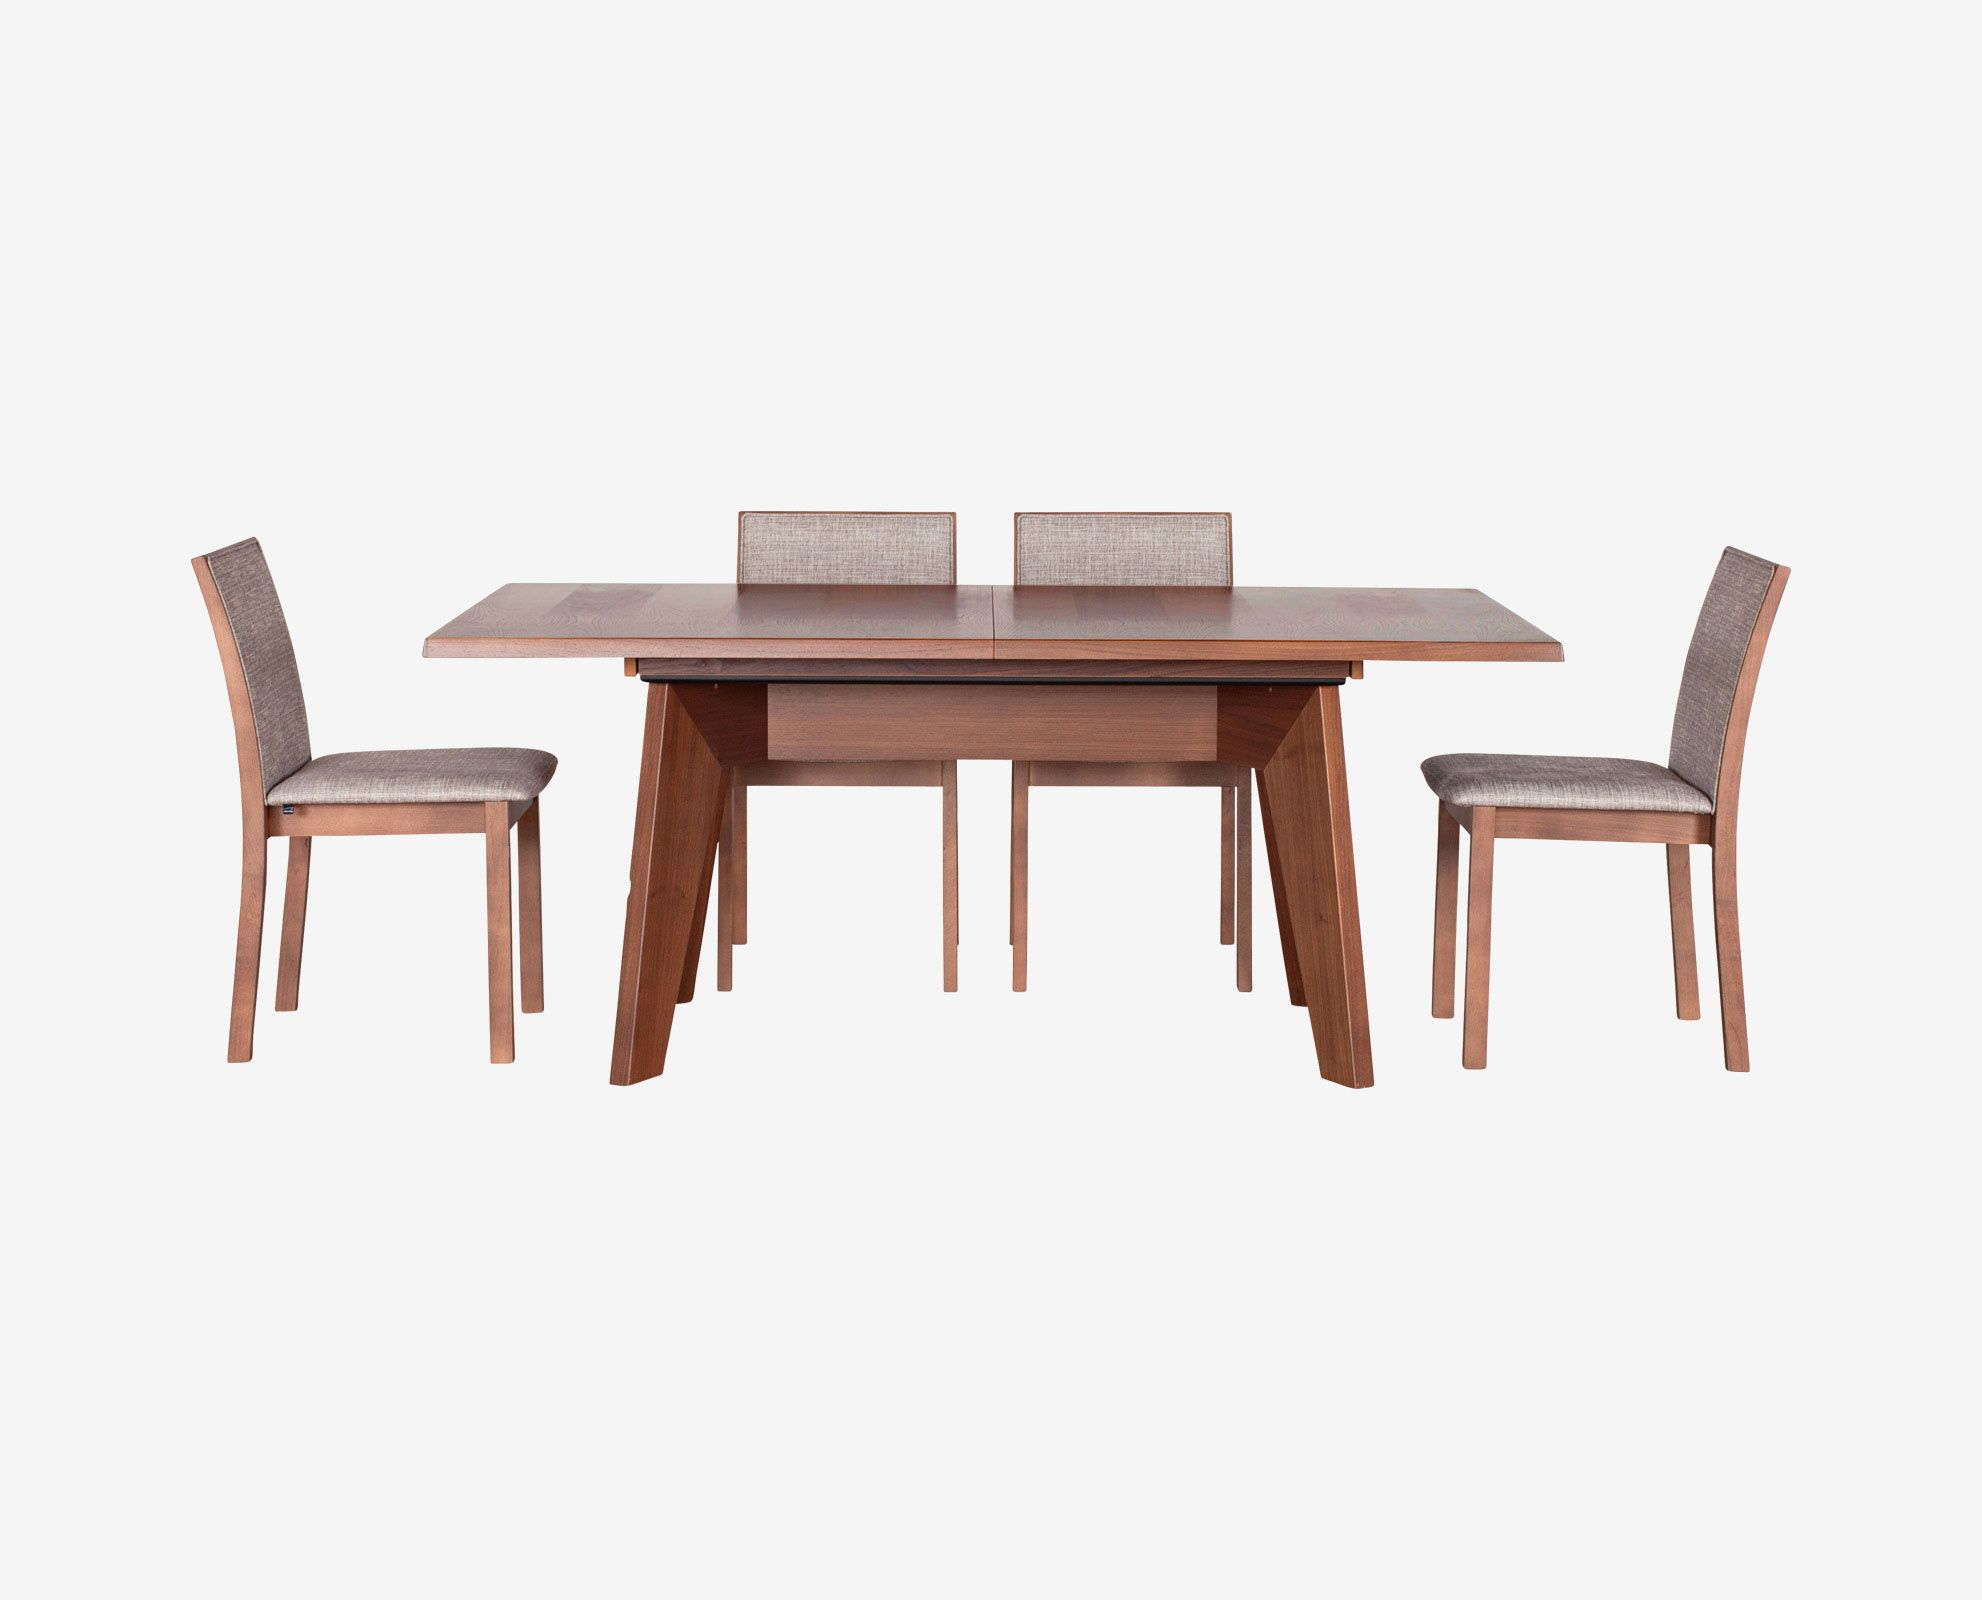 Scandinavian Style Dining Room Table: Randers Extension Dining Table Scandinavian Designs